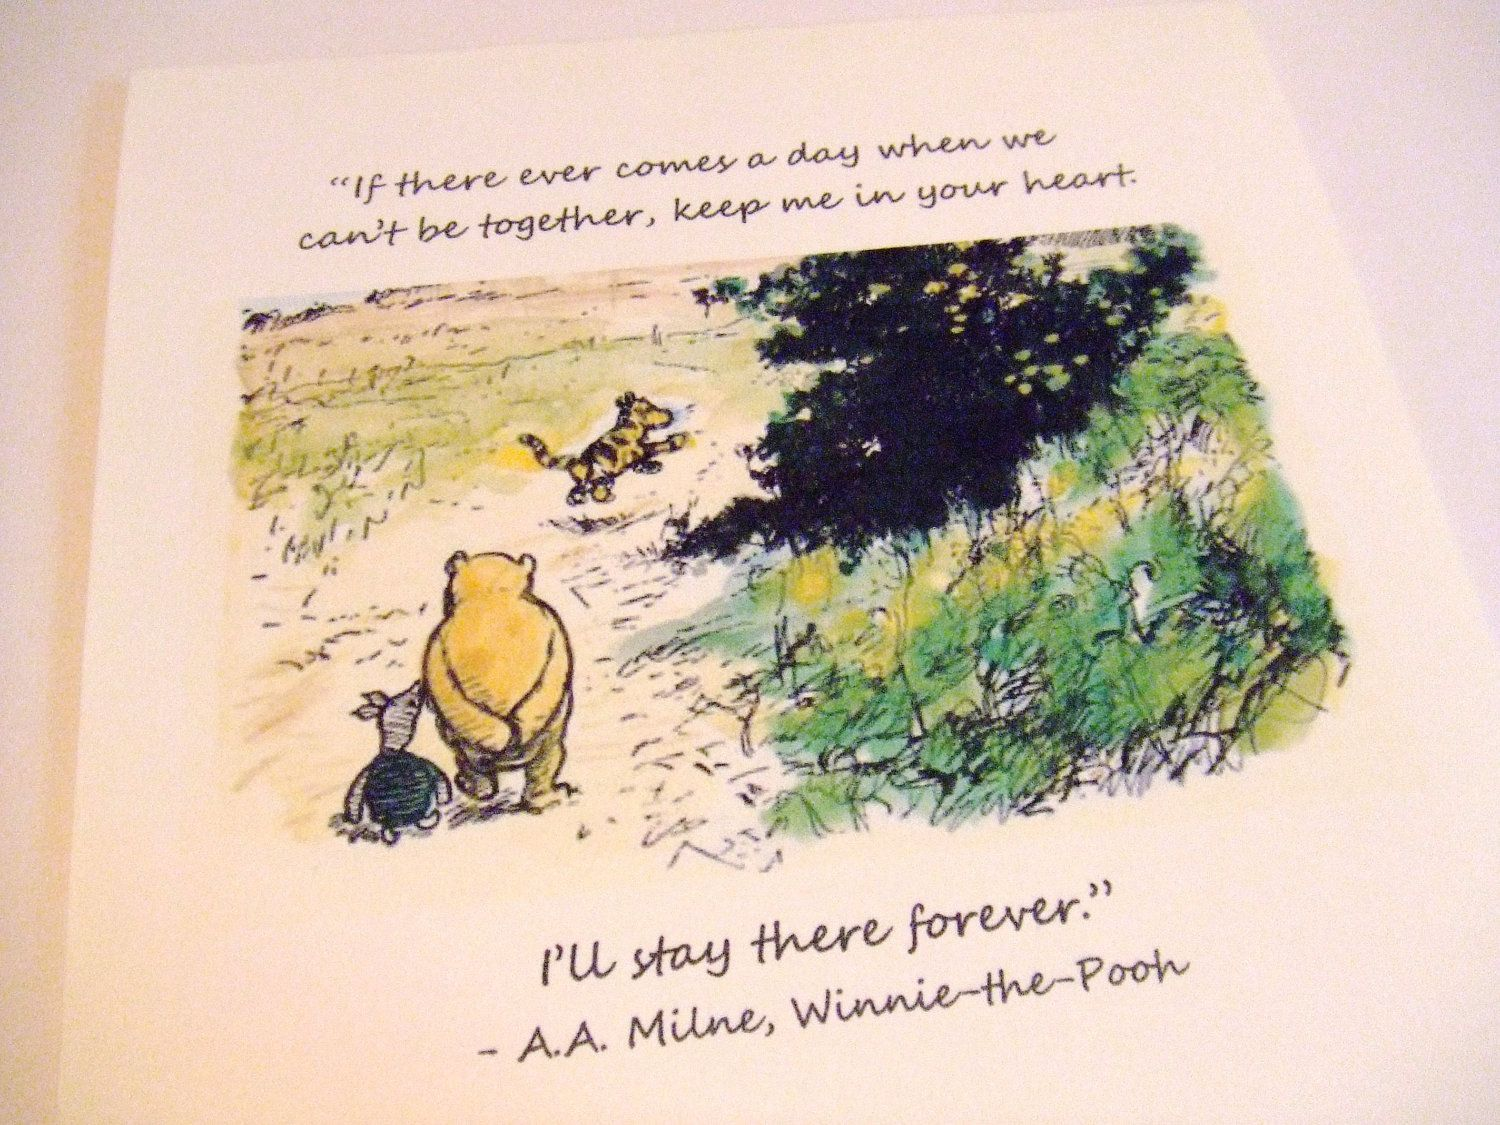 Winnie The Pooh And Piglet Quotes About Friendship Google Image Result For Httpimg3.etsystatic00006011550